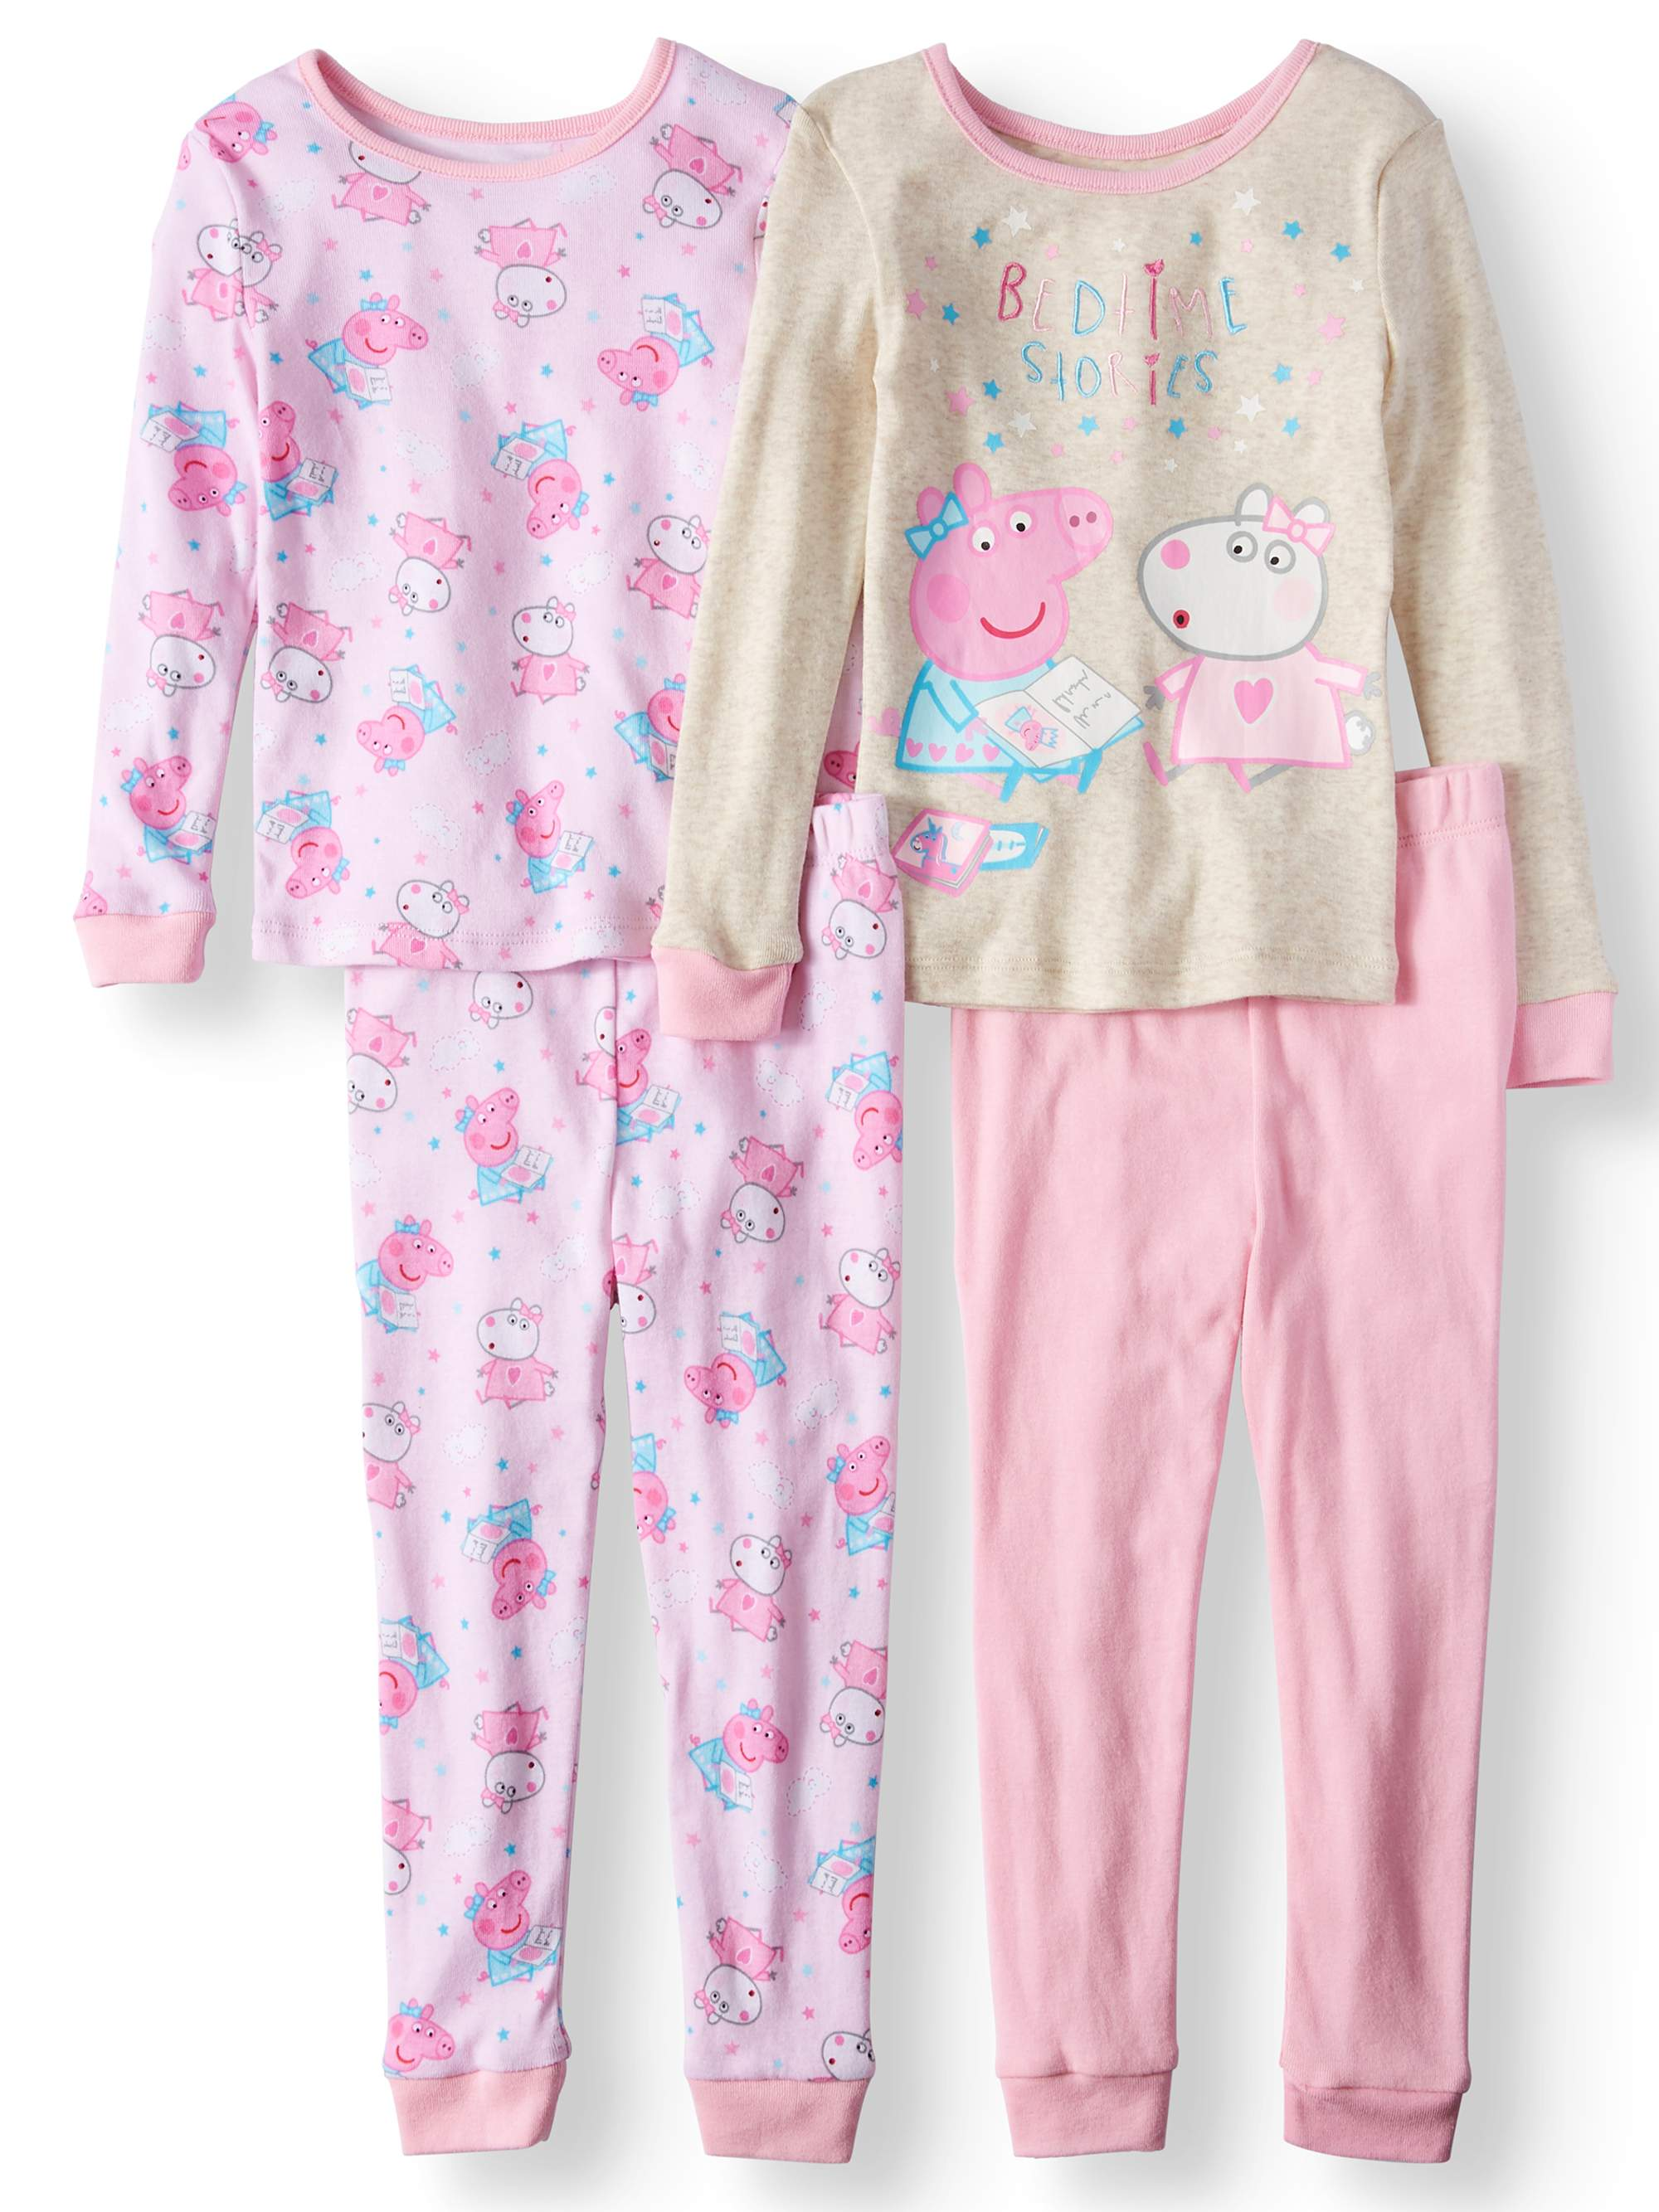 """Bedtime Stories"" Long Sleeve Top & Pants Pajamas, 4pc Set (Toddler Girls)"